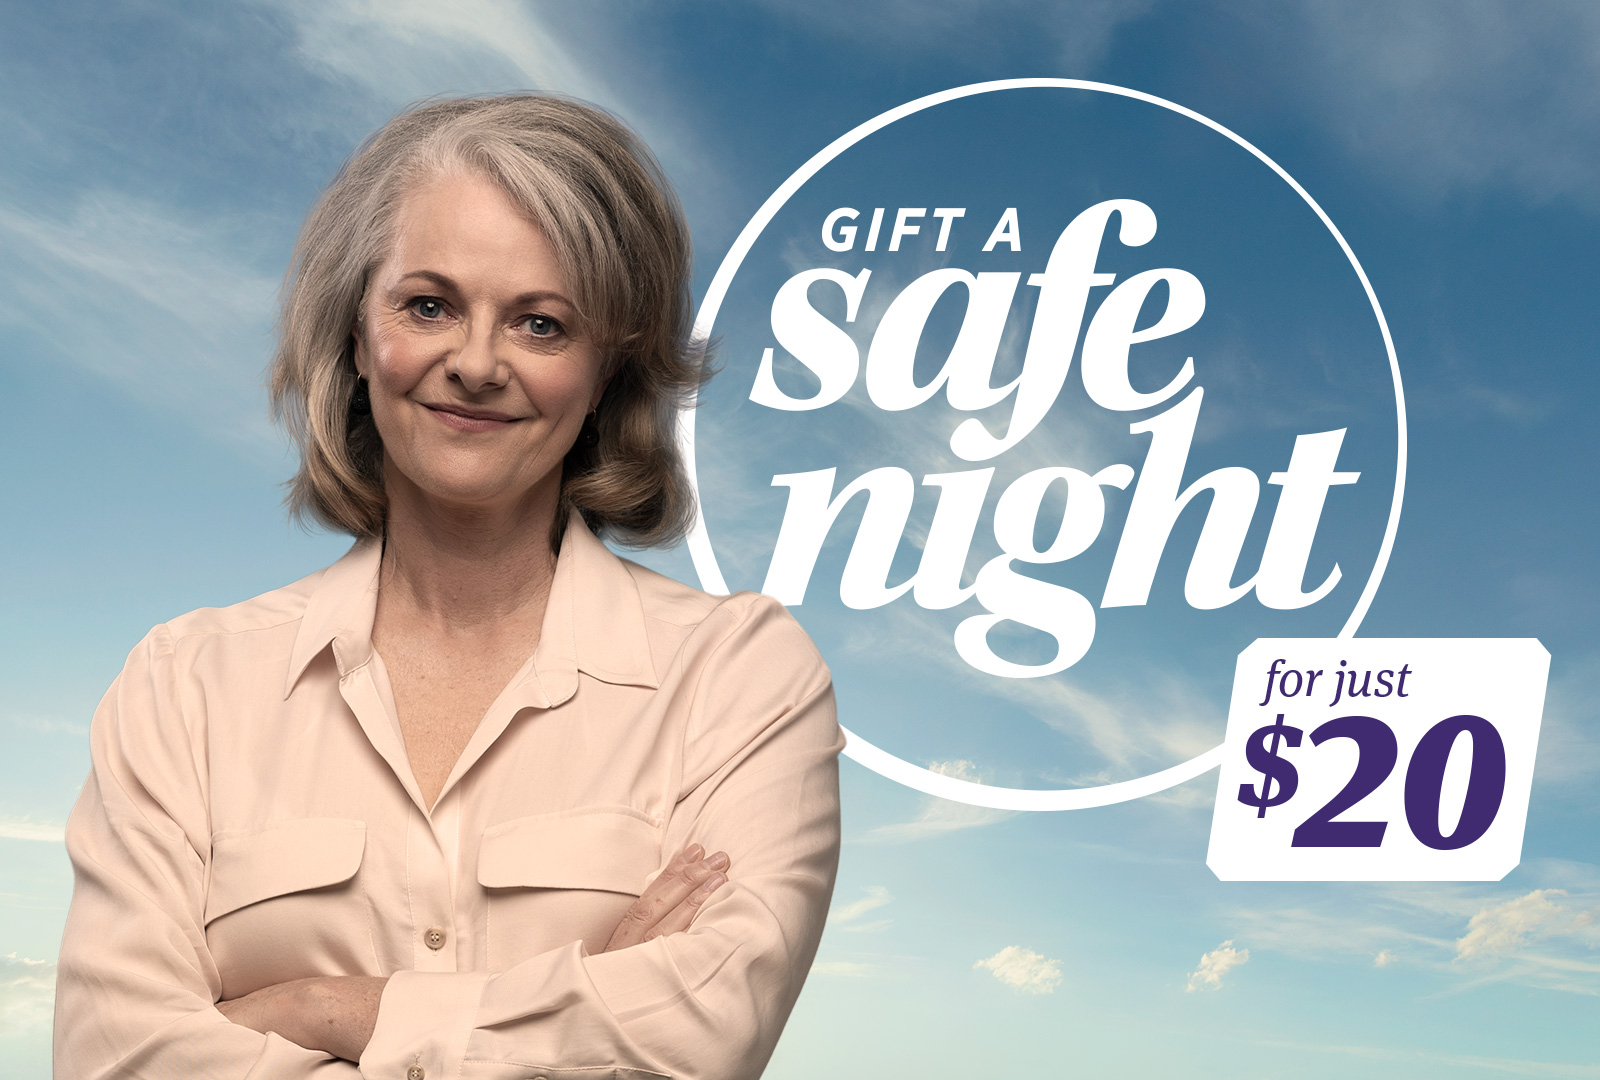 Gift A Safe Night